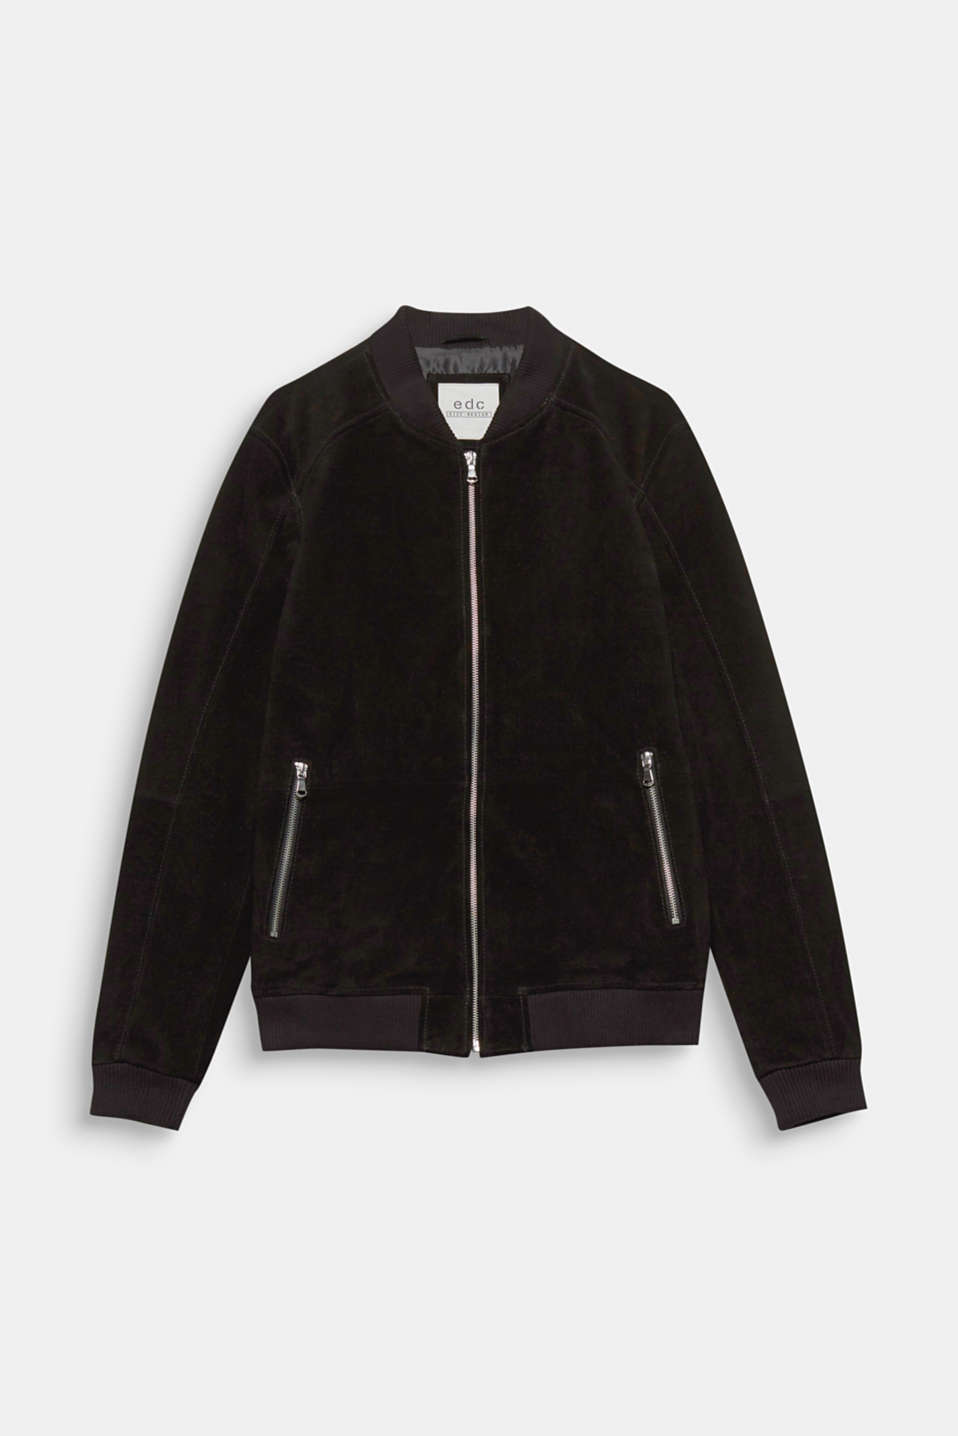 A sporty fashion highlight: bomber jacket in soft suede